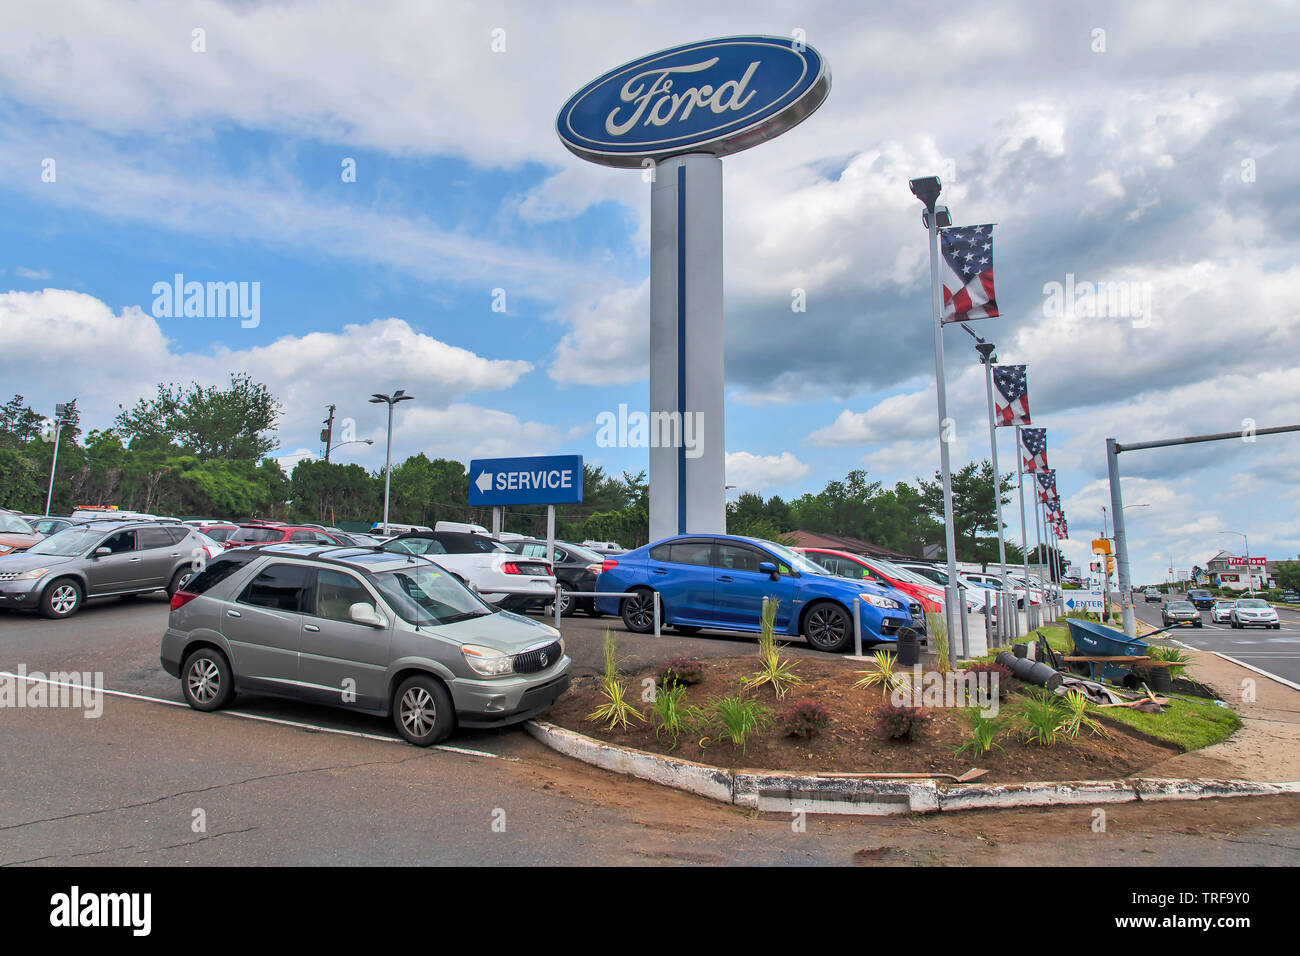 John Kennedy Ford >> John Kennedy Ford Of Feasterville Pa Usa Stock Photo 255419332 Alamy